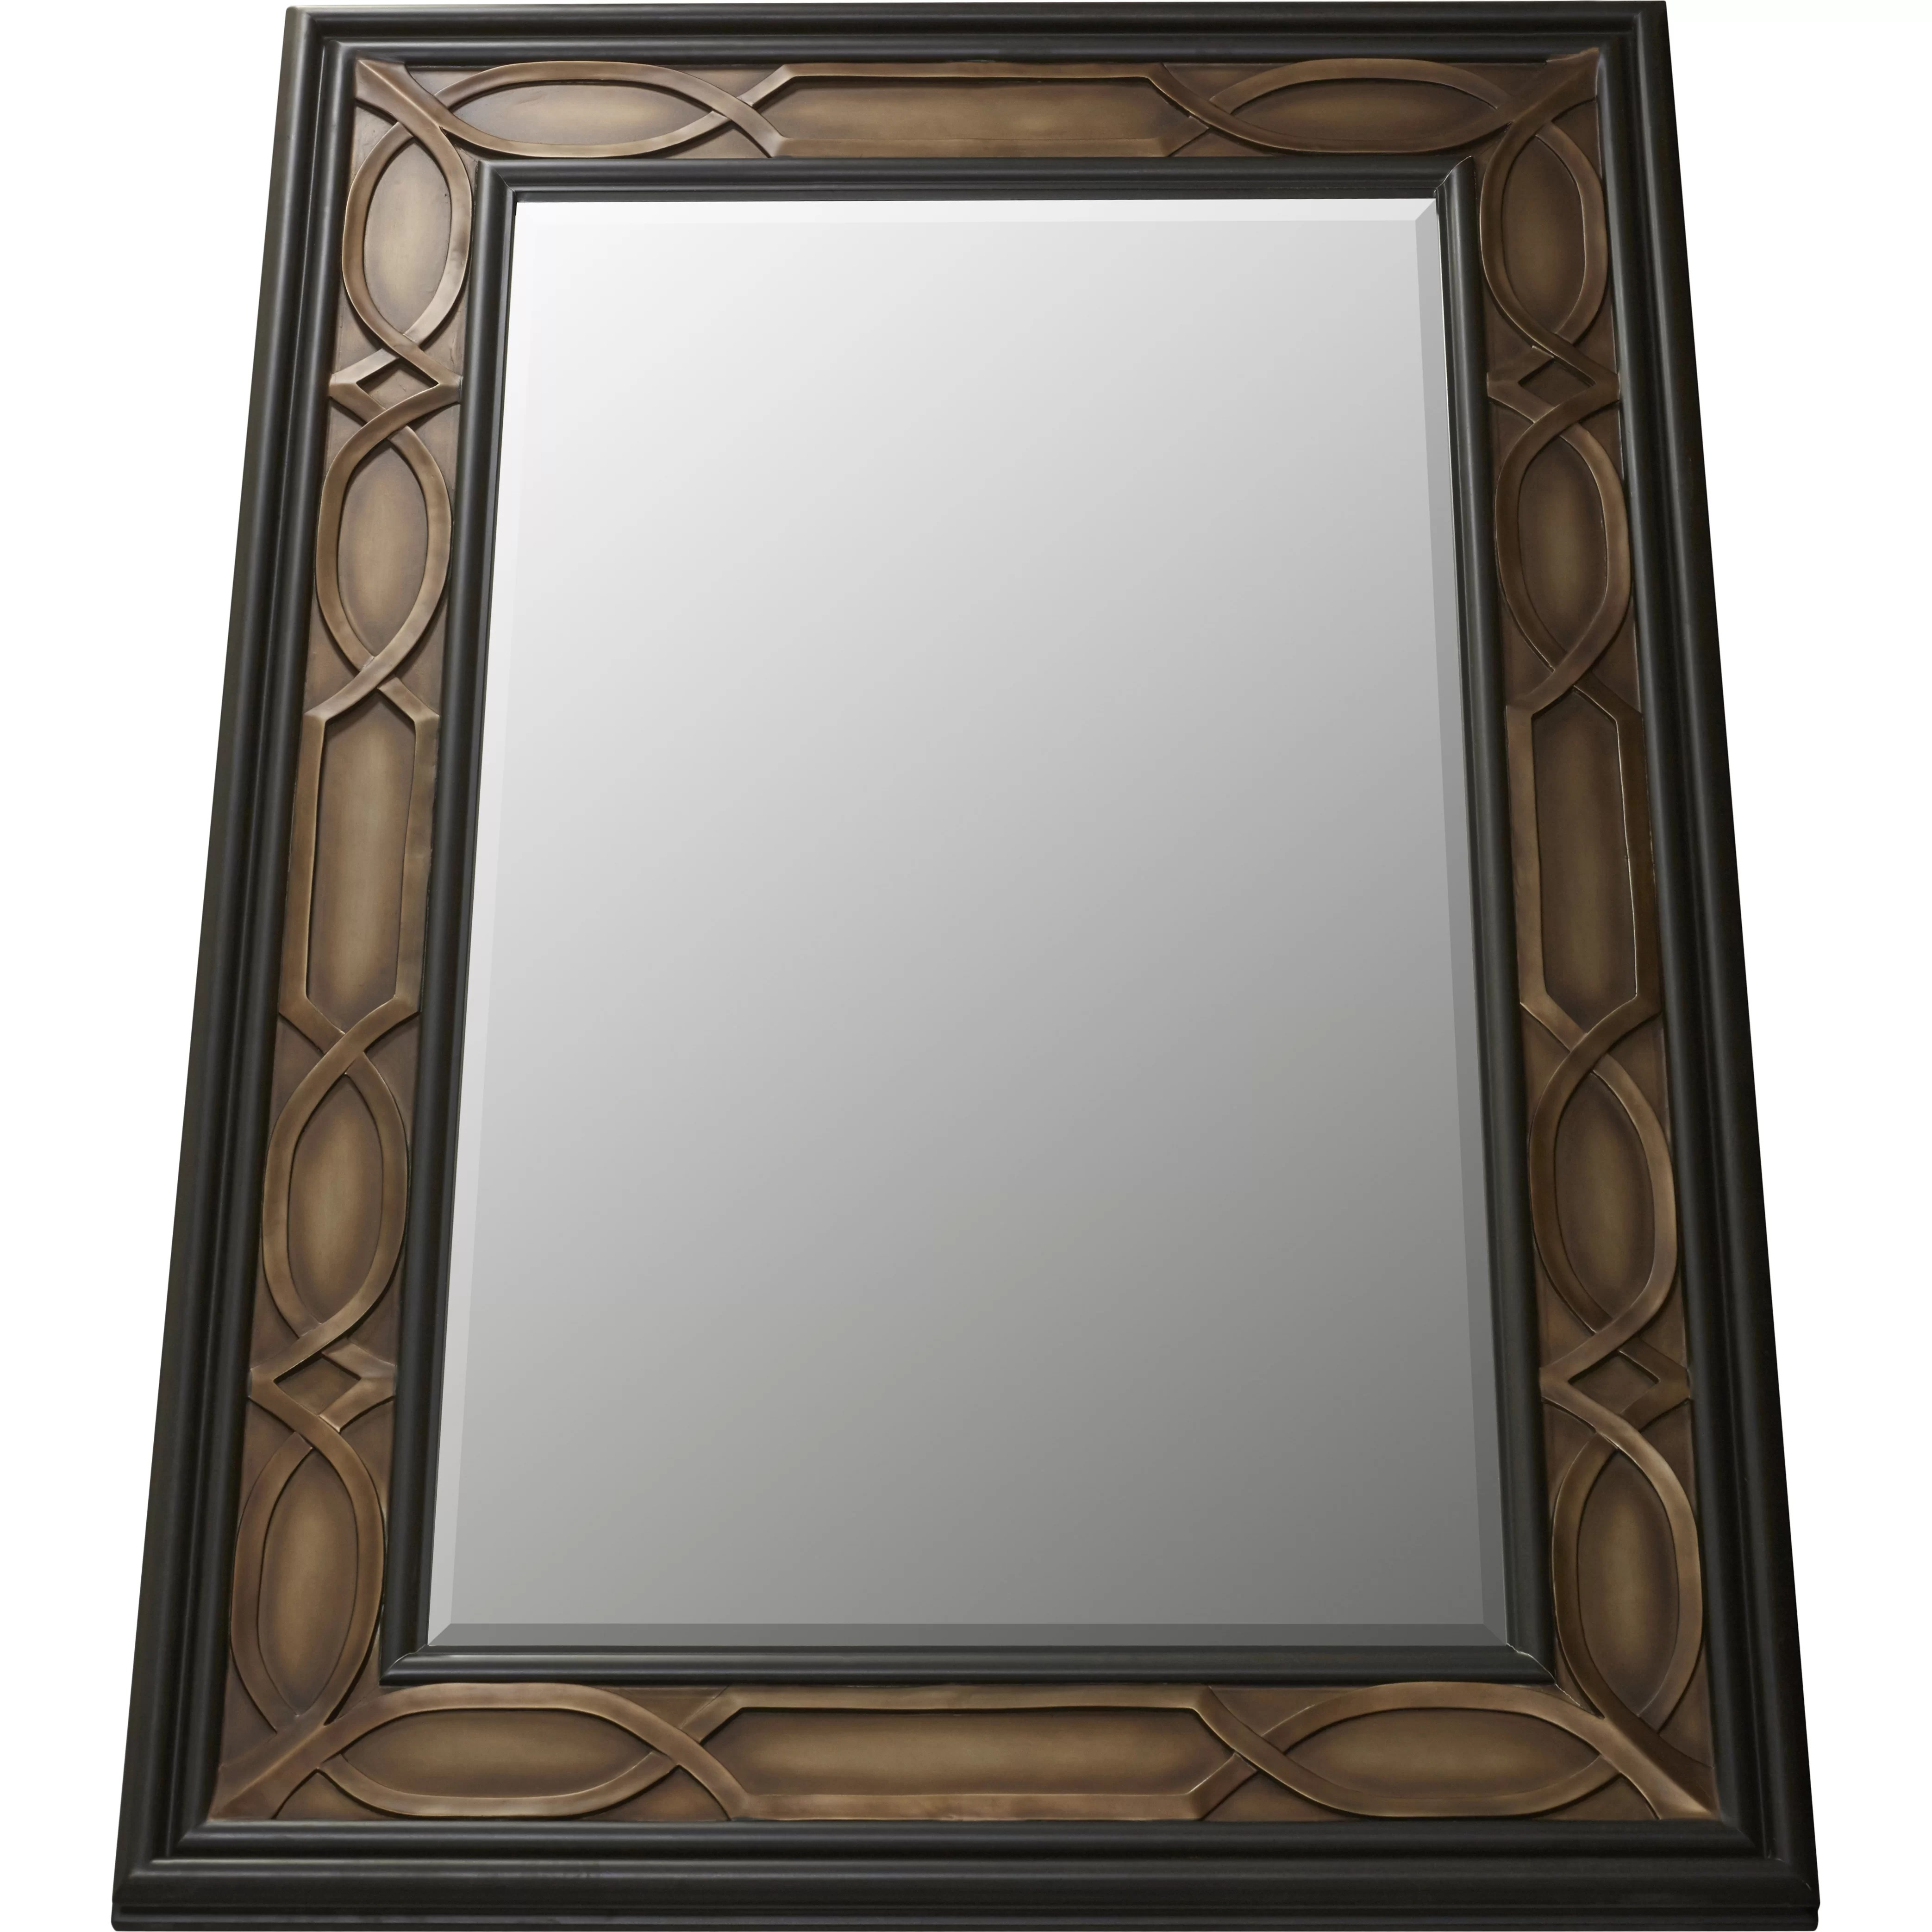 Darby Home Co London Leaning Floor Mirror & Reviews